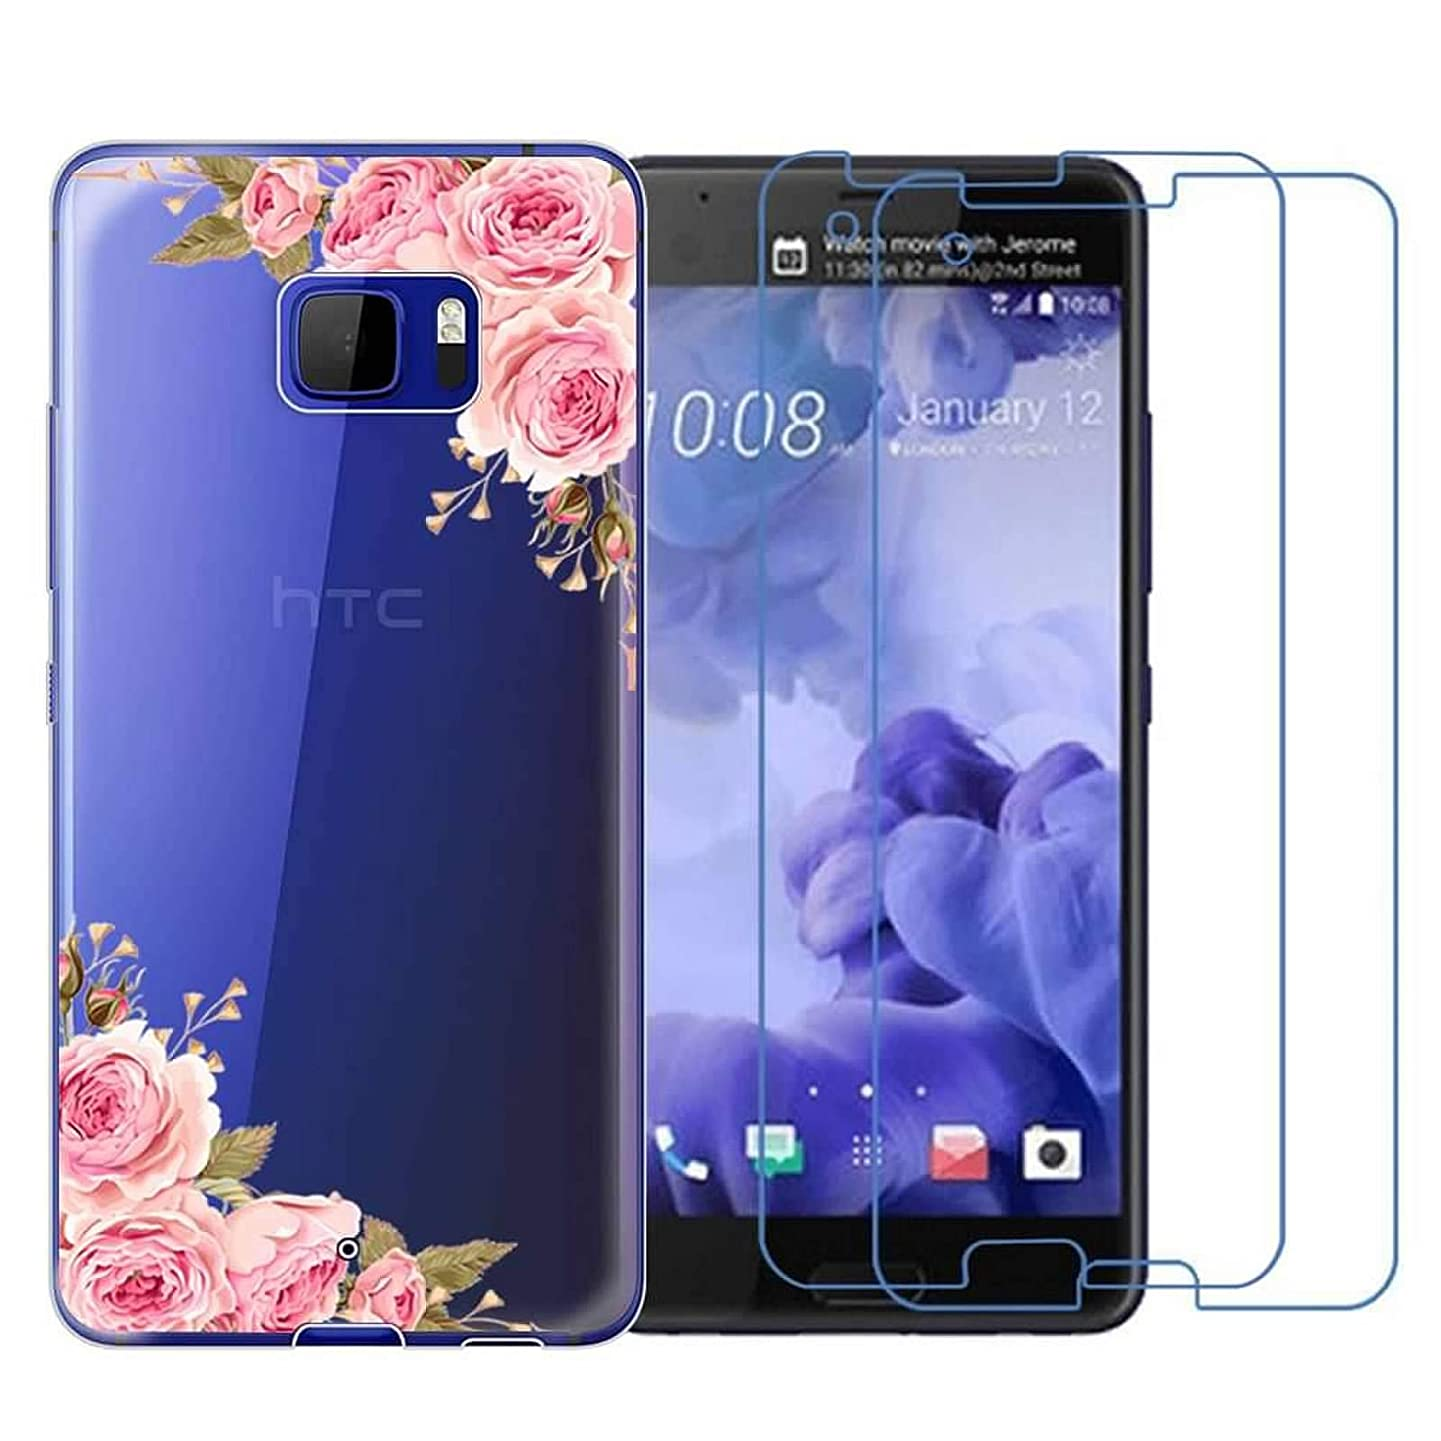 HTC U Ultra Case with 2 Pack Glass Screen Protector Phone Case for Men Women Girls Clear Soft TPU with Protective Bumper Cover Case for HTC U Ultra-Rose